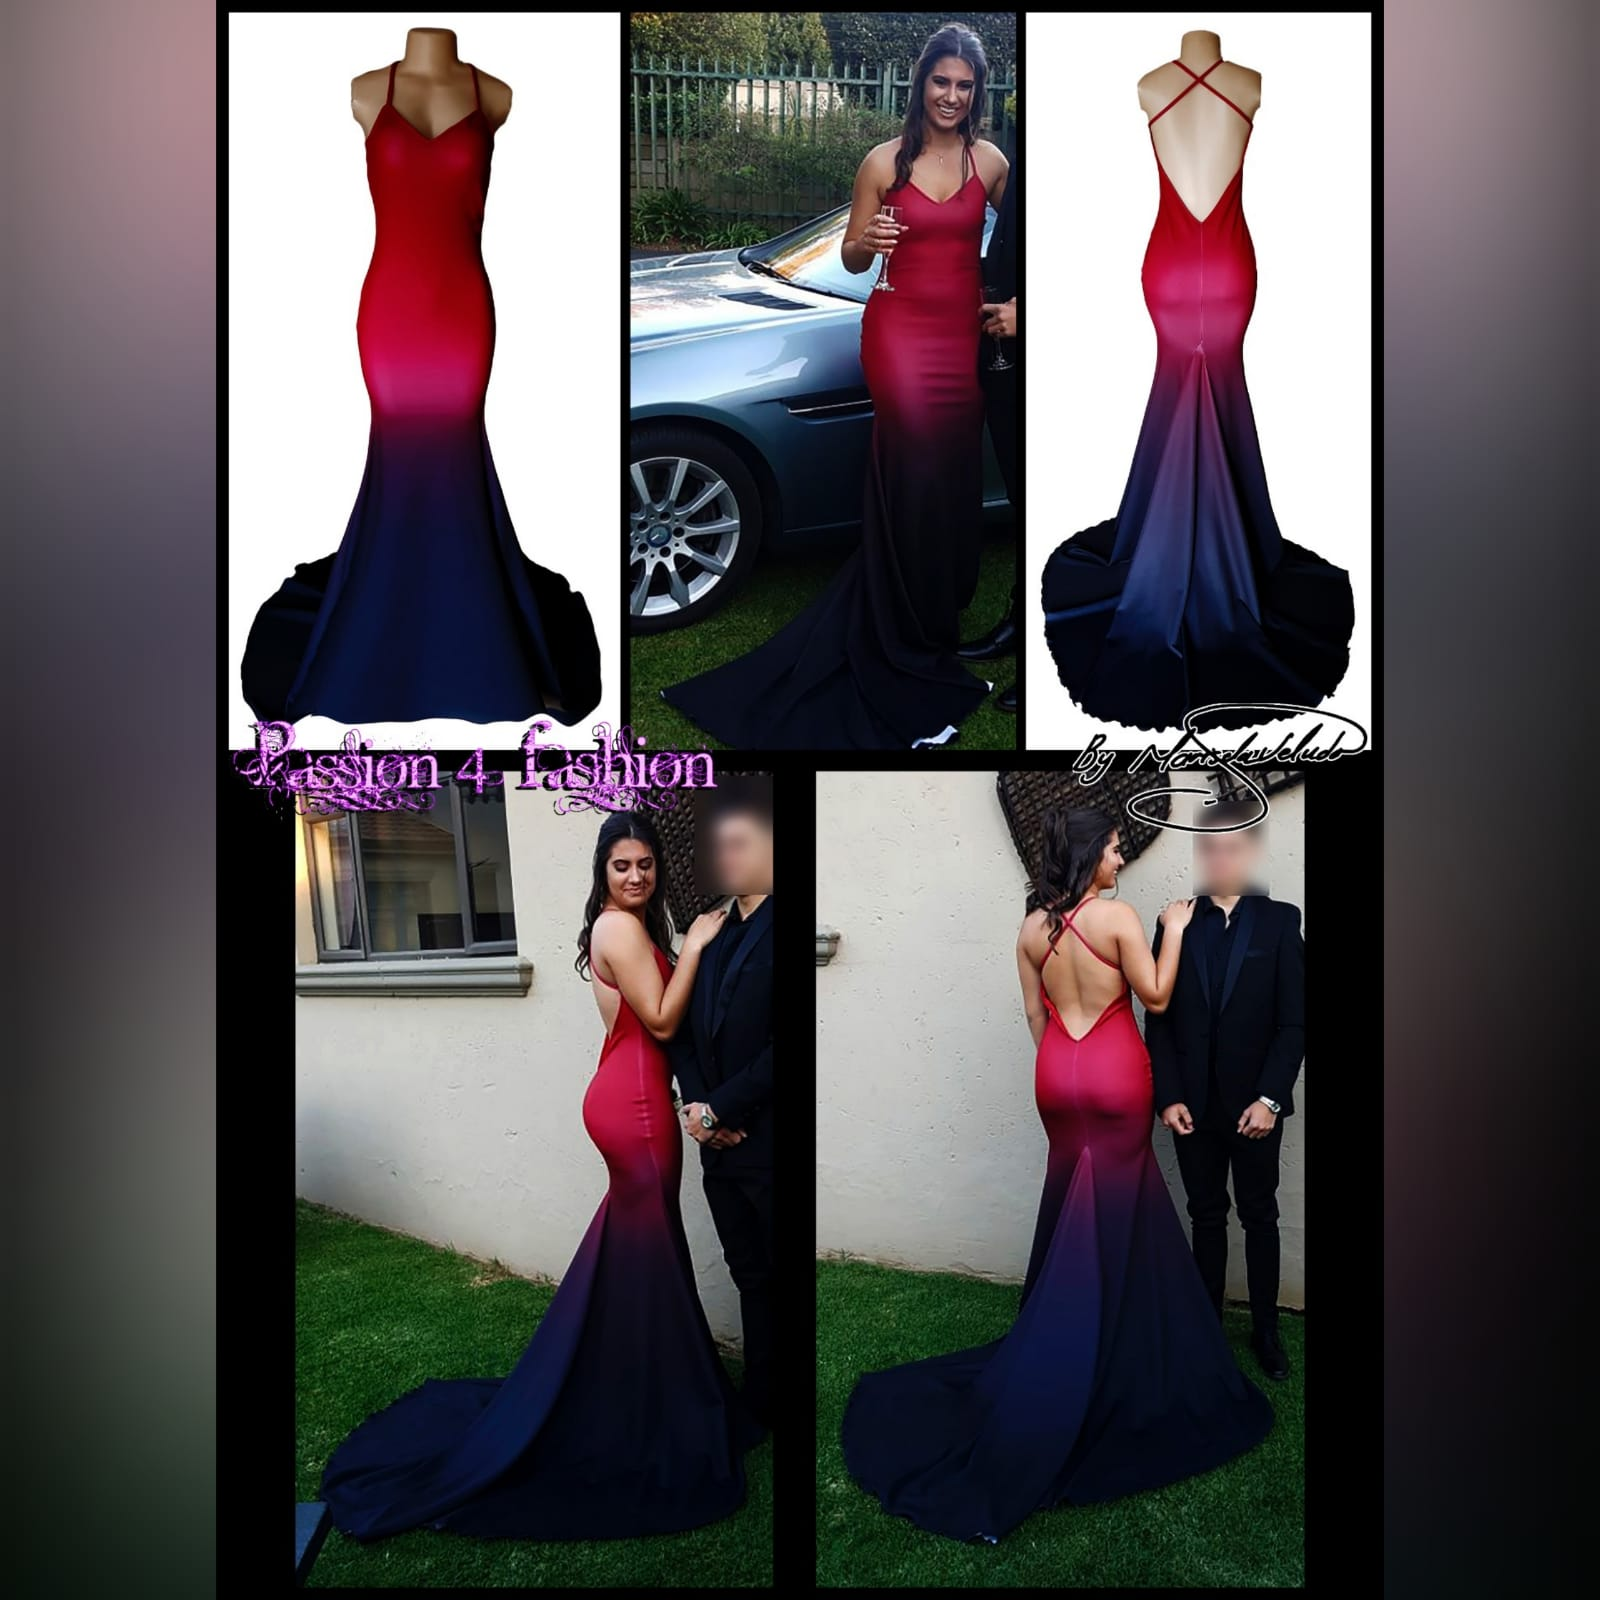 Red black ombre mermaid prom dress 5 red and black ombre mermaid sexy prom dress. With a v neckline, low open back with crossed shoulder straps and long train.